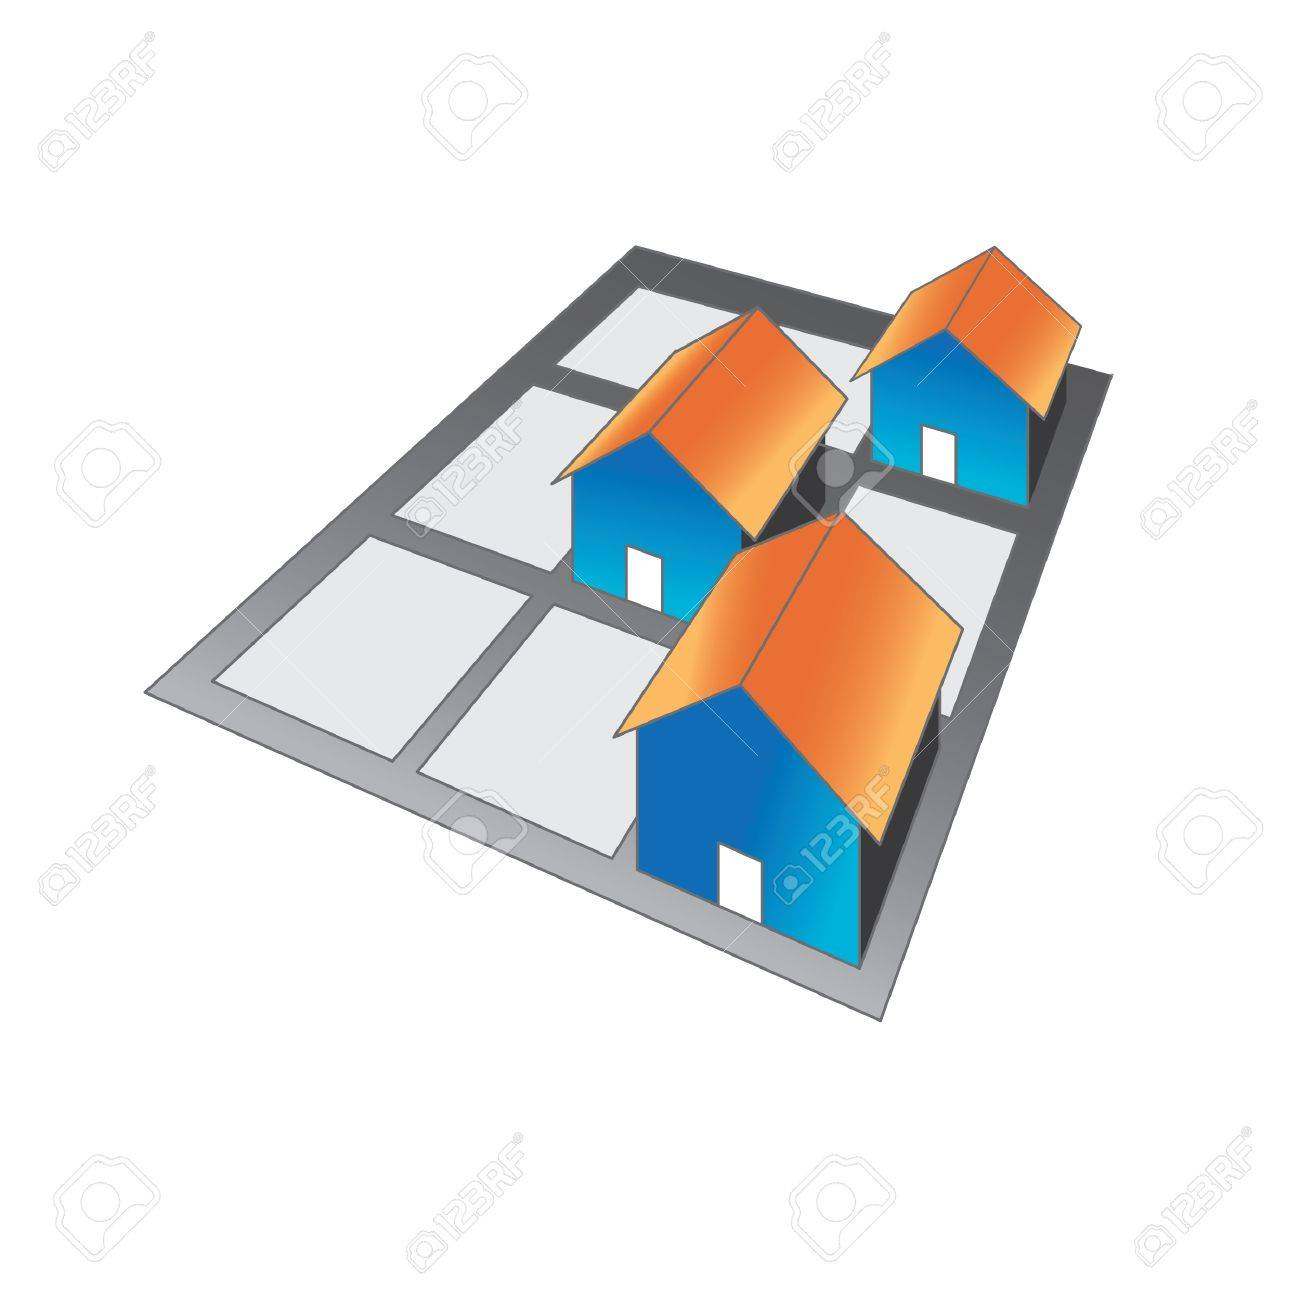 Group of houses Stock Vector - 10836985